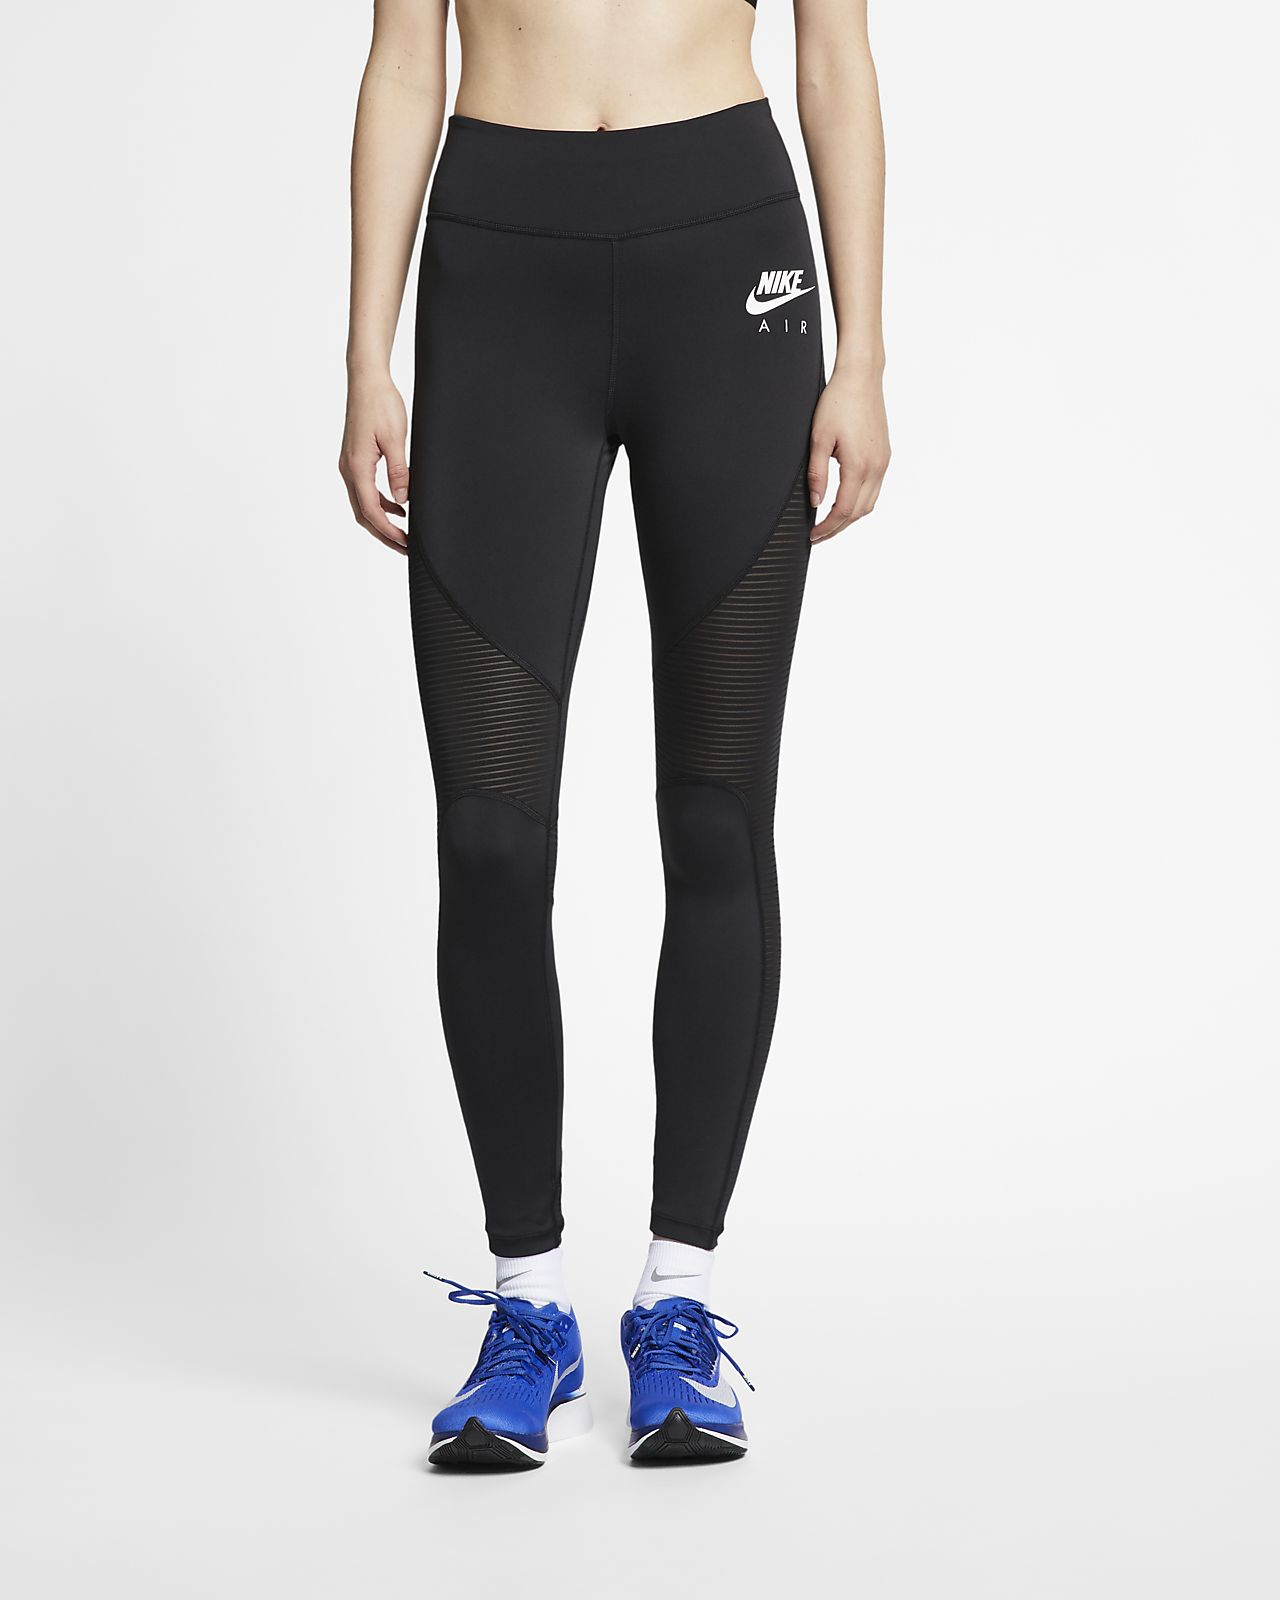 Nike Fast Women's 7/8 Running Tights